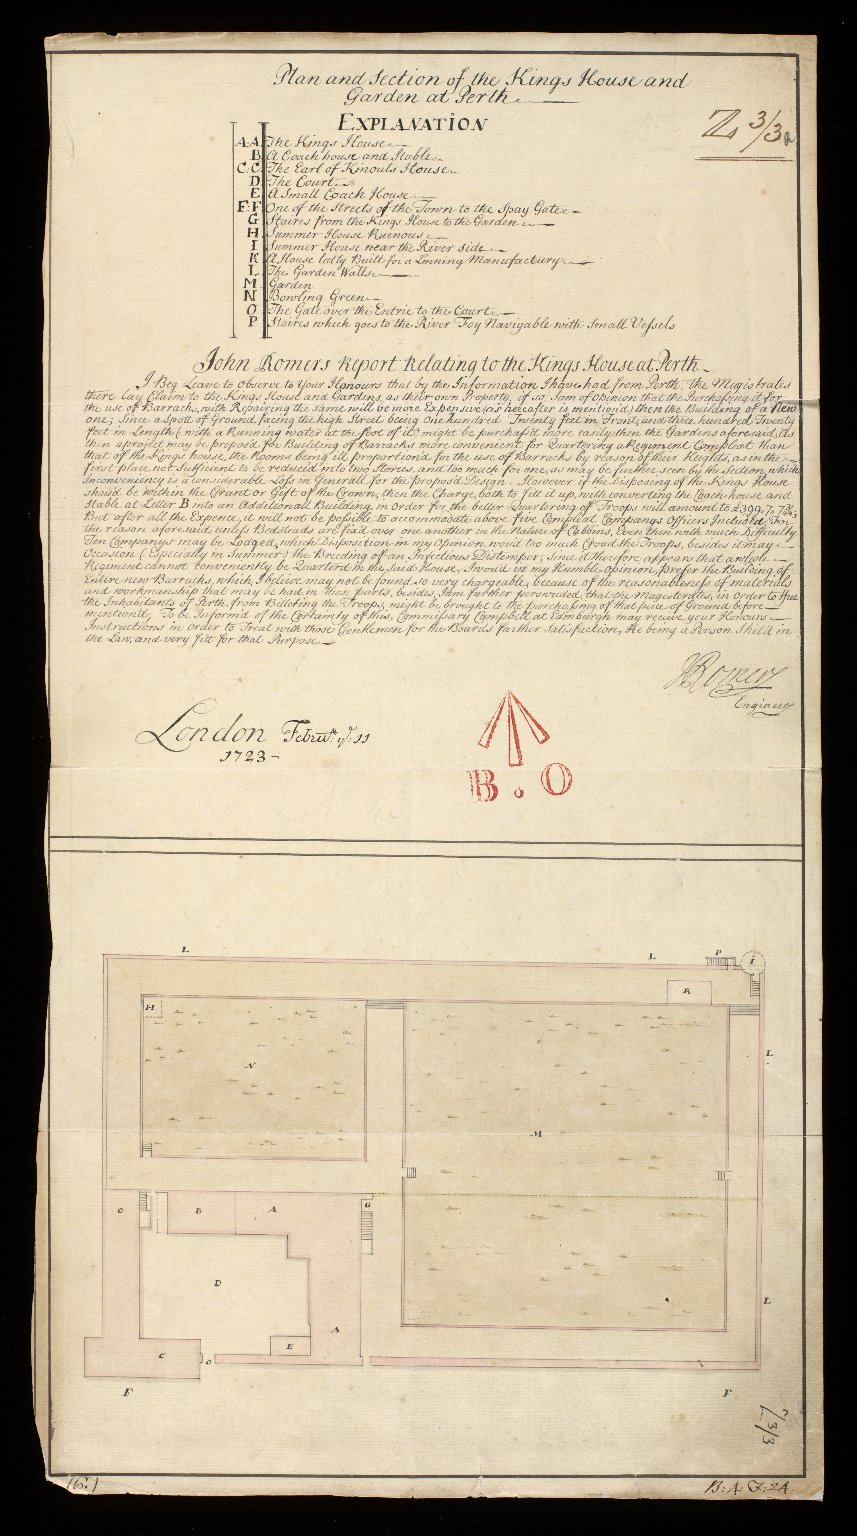 Plan and Section of the Kings House and Garden at Perth [1 of 1]